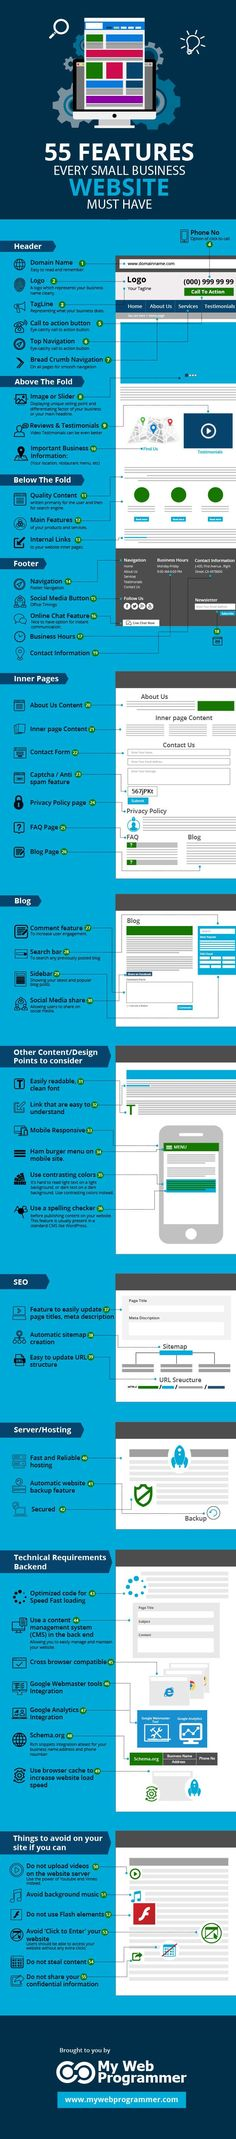 55 Features Every Small Business Website Must Have #Infographic #SmallBusiness